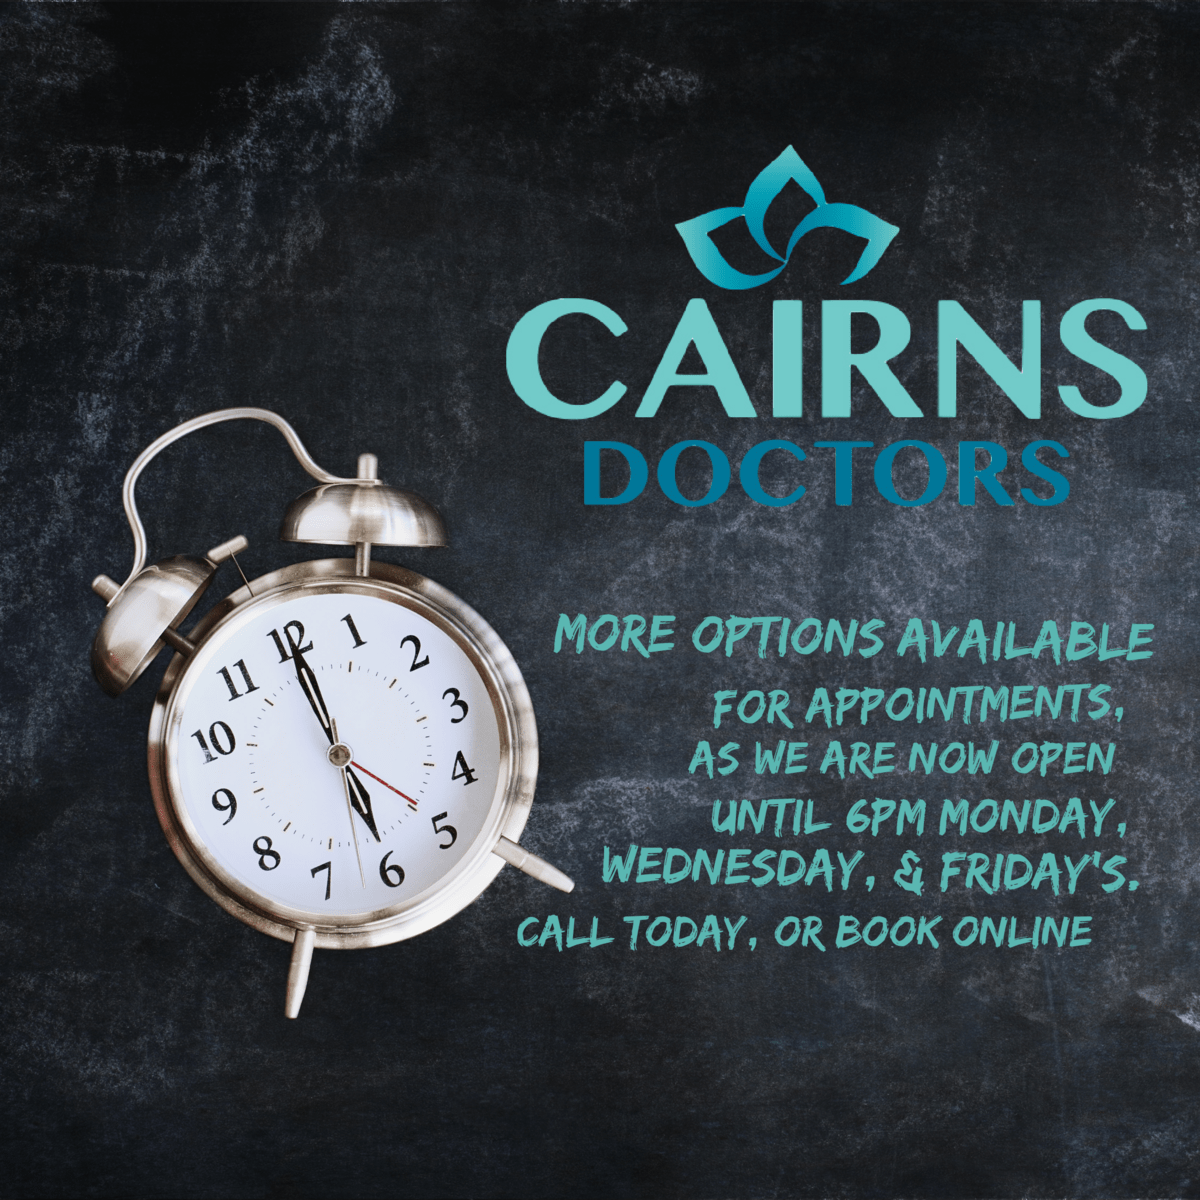 Change in hours – Cairns Doctors